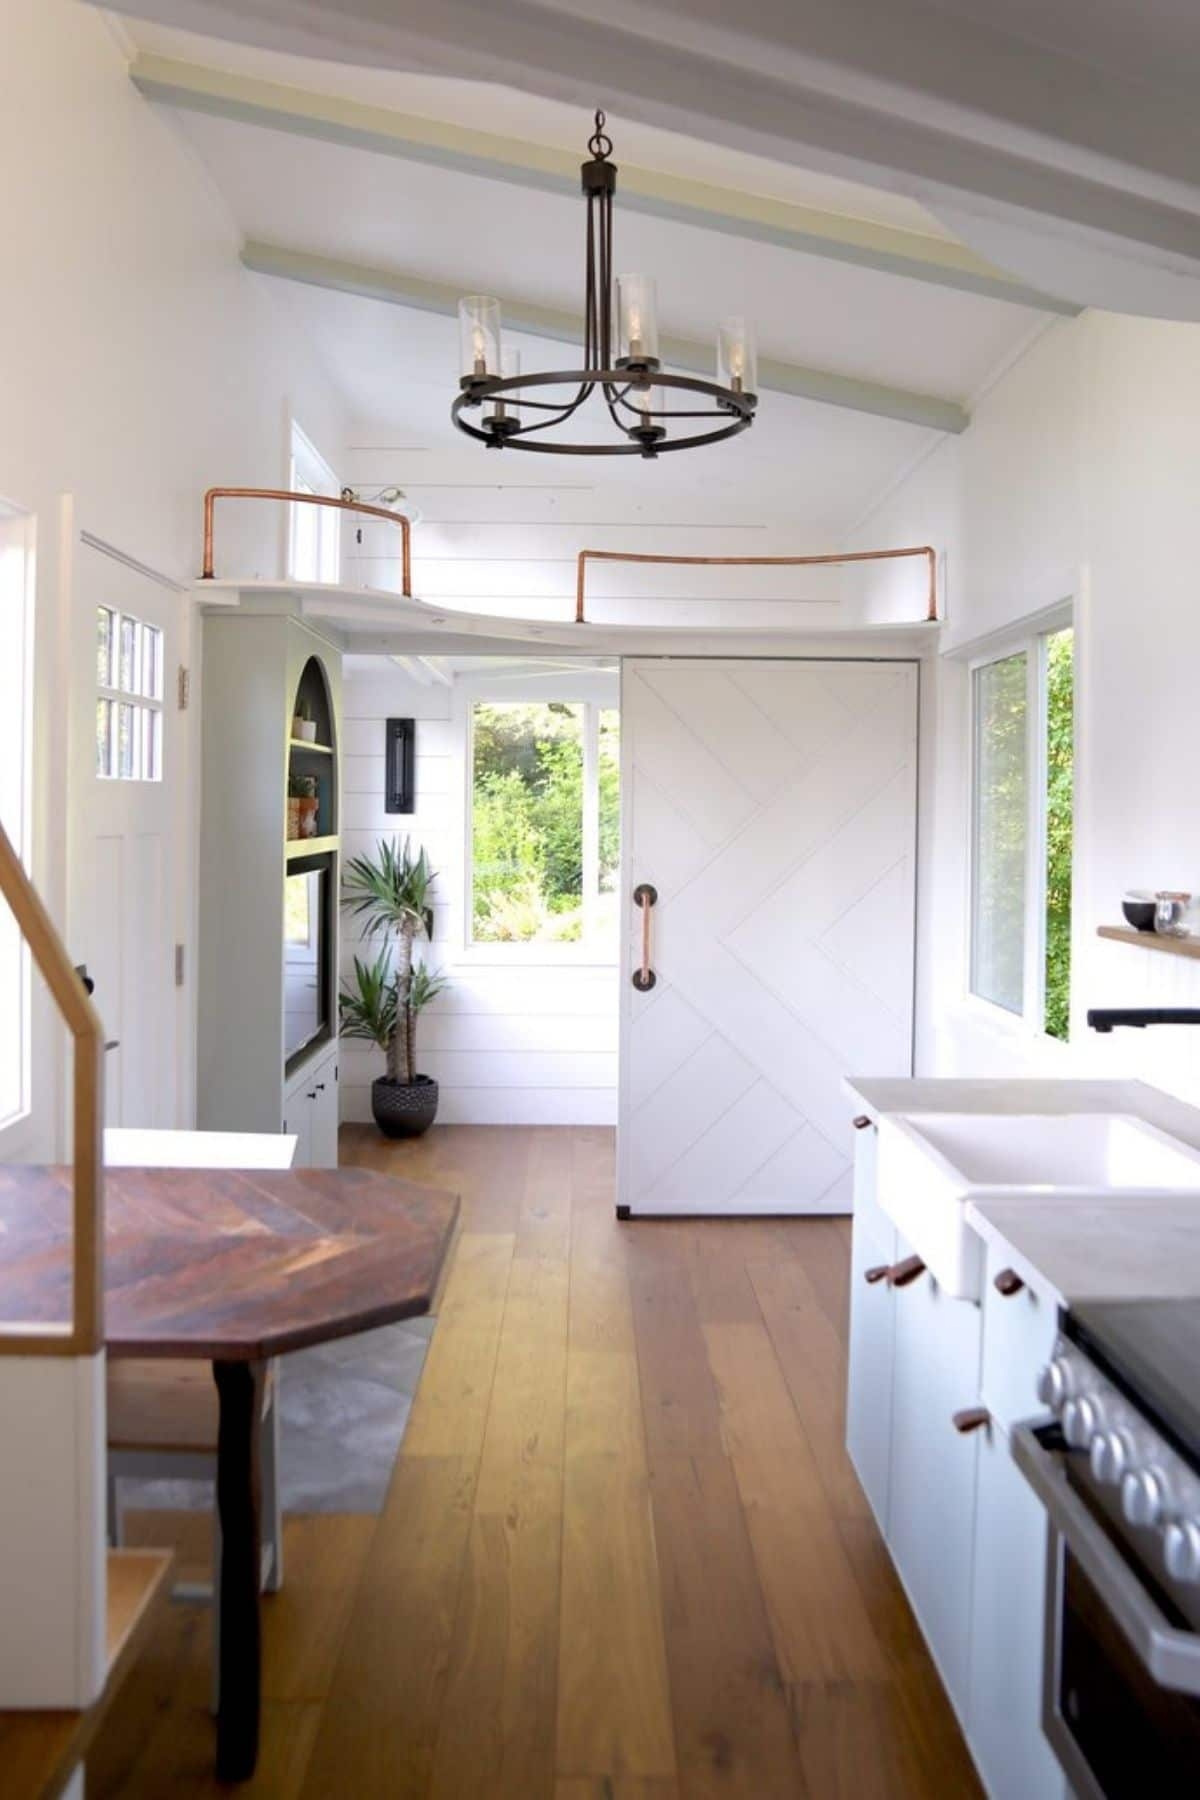 view into private bedroom from kitchen with loft in background and sink in foreground